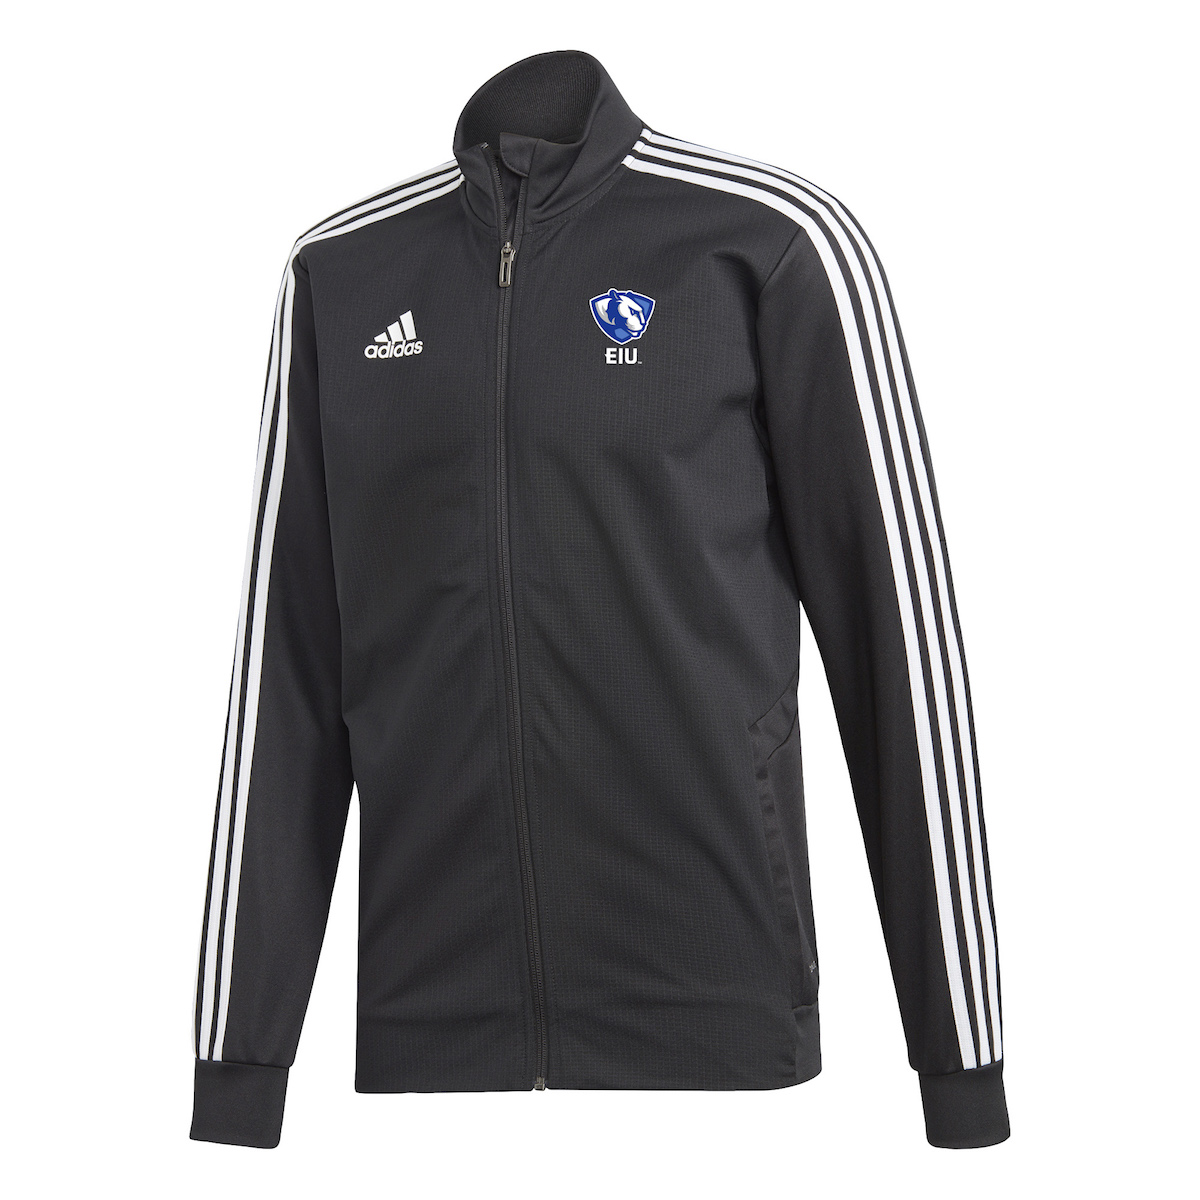 Image For Adidas EIU Track Jacket